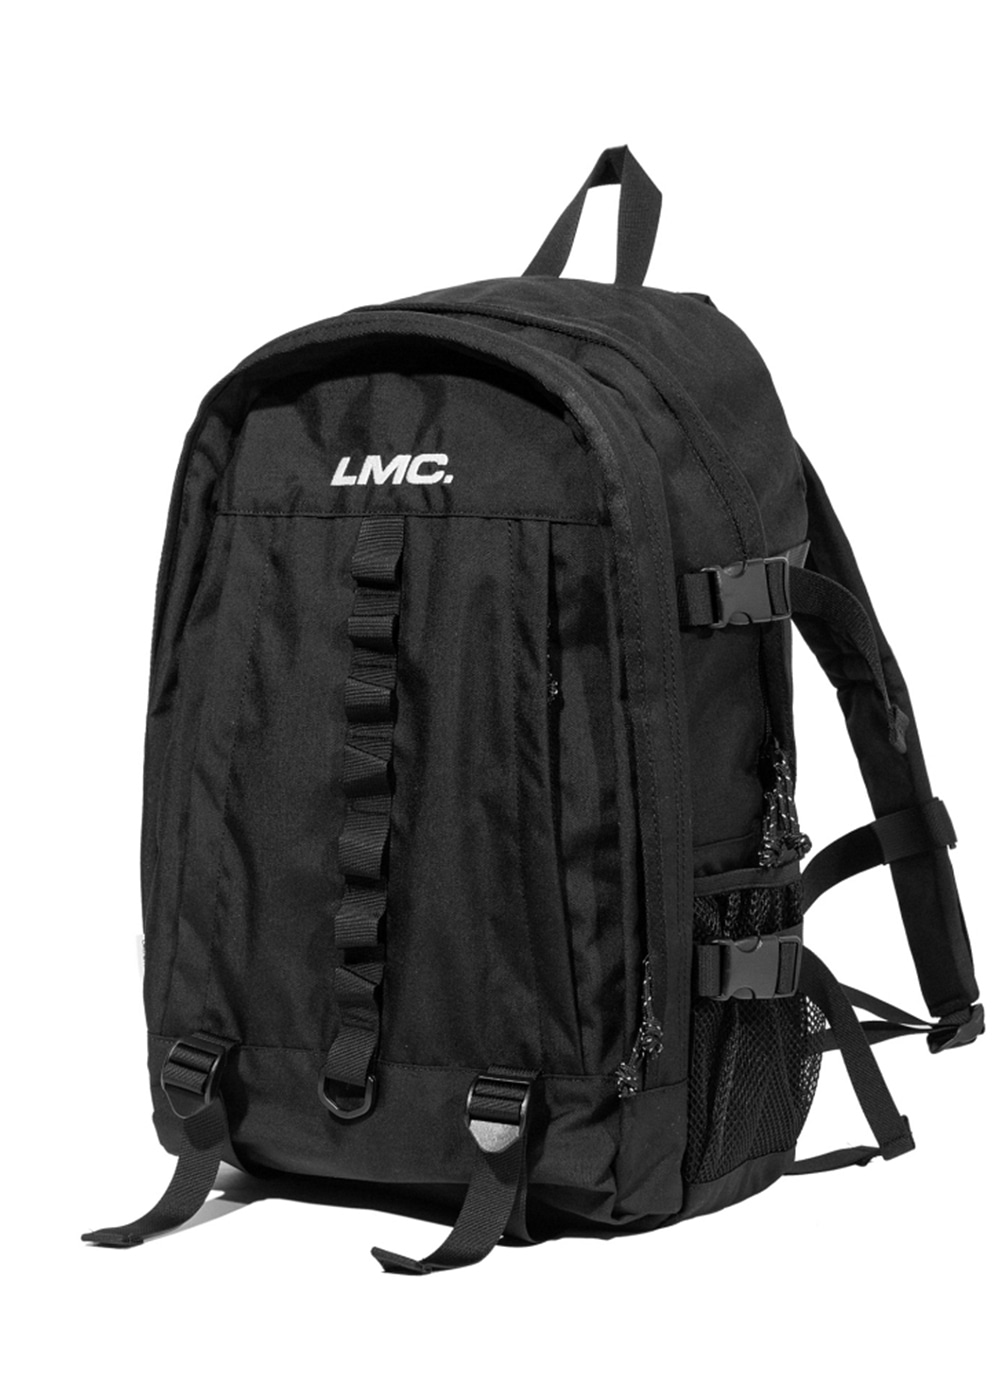 LMC SYSTEM UTILITY BACKPACK black